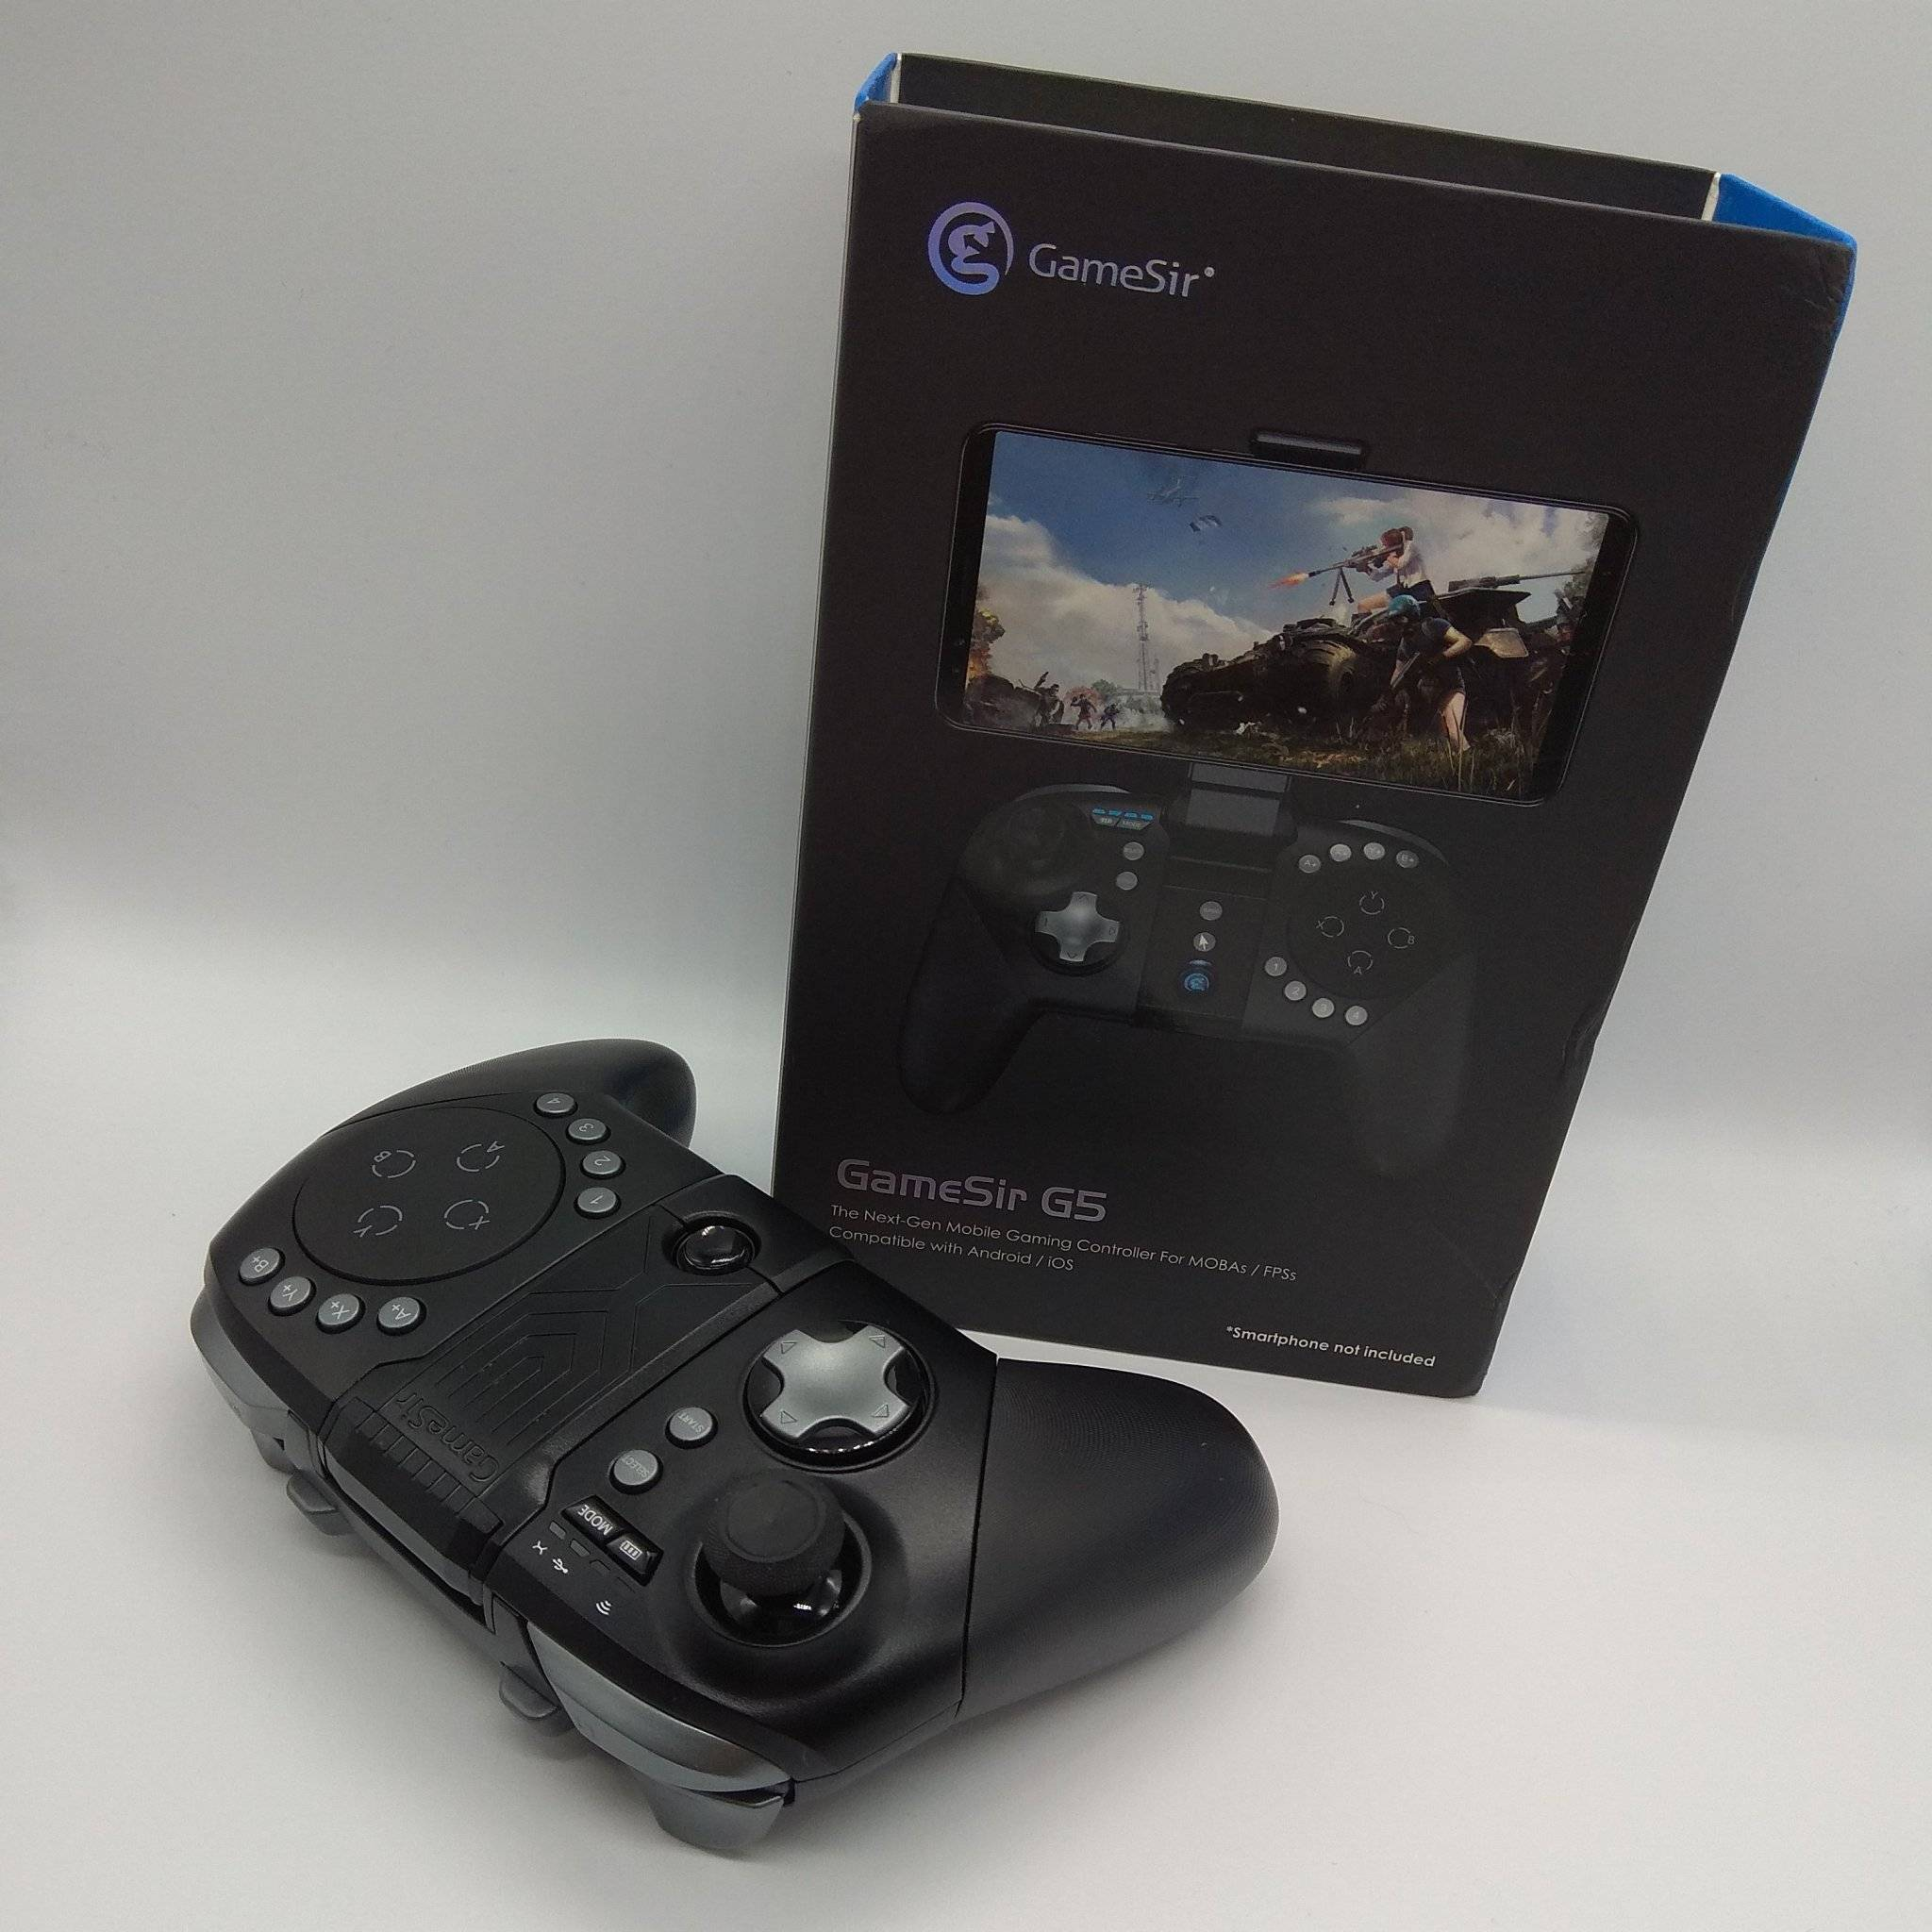 Gamesir f4 falcon review: did the mobile gaming controller falcon help me become a strong player